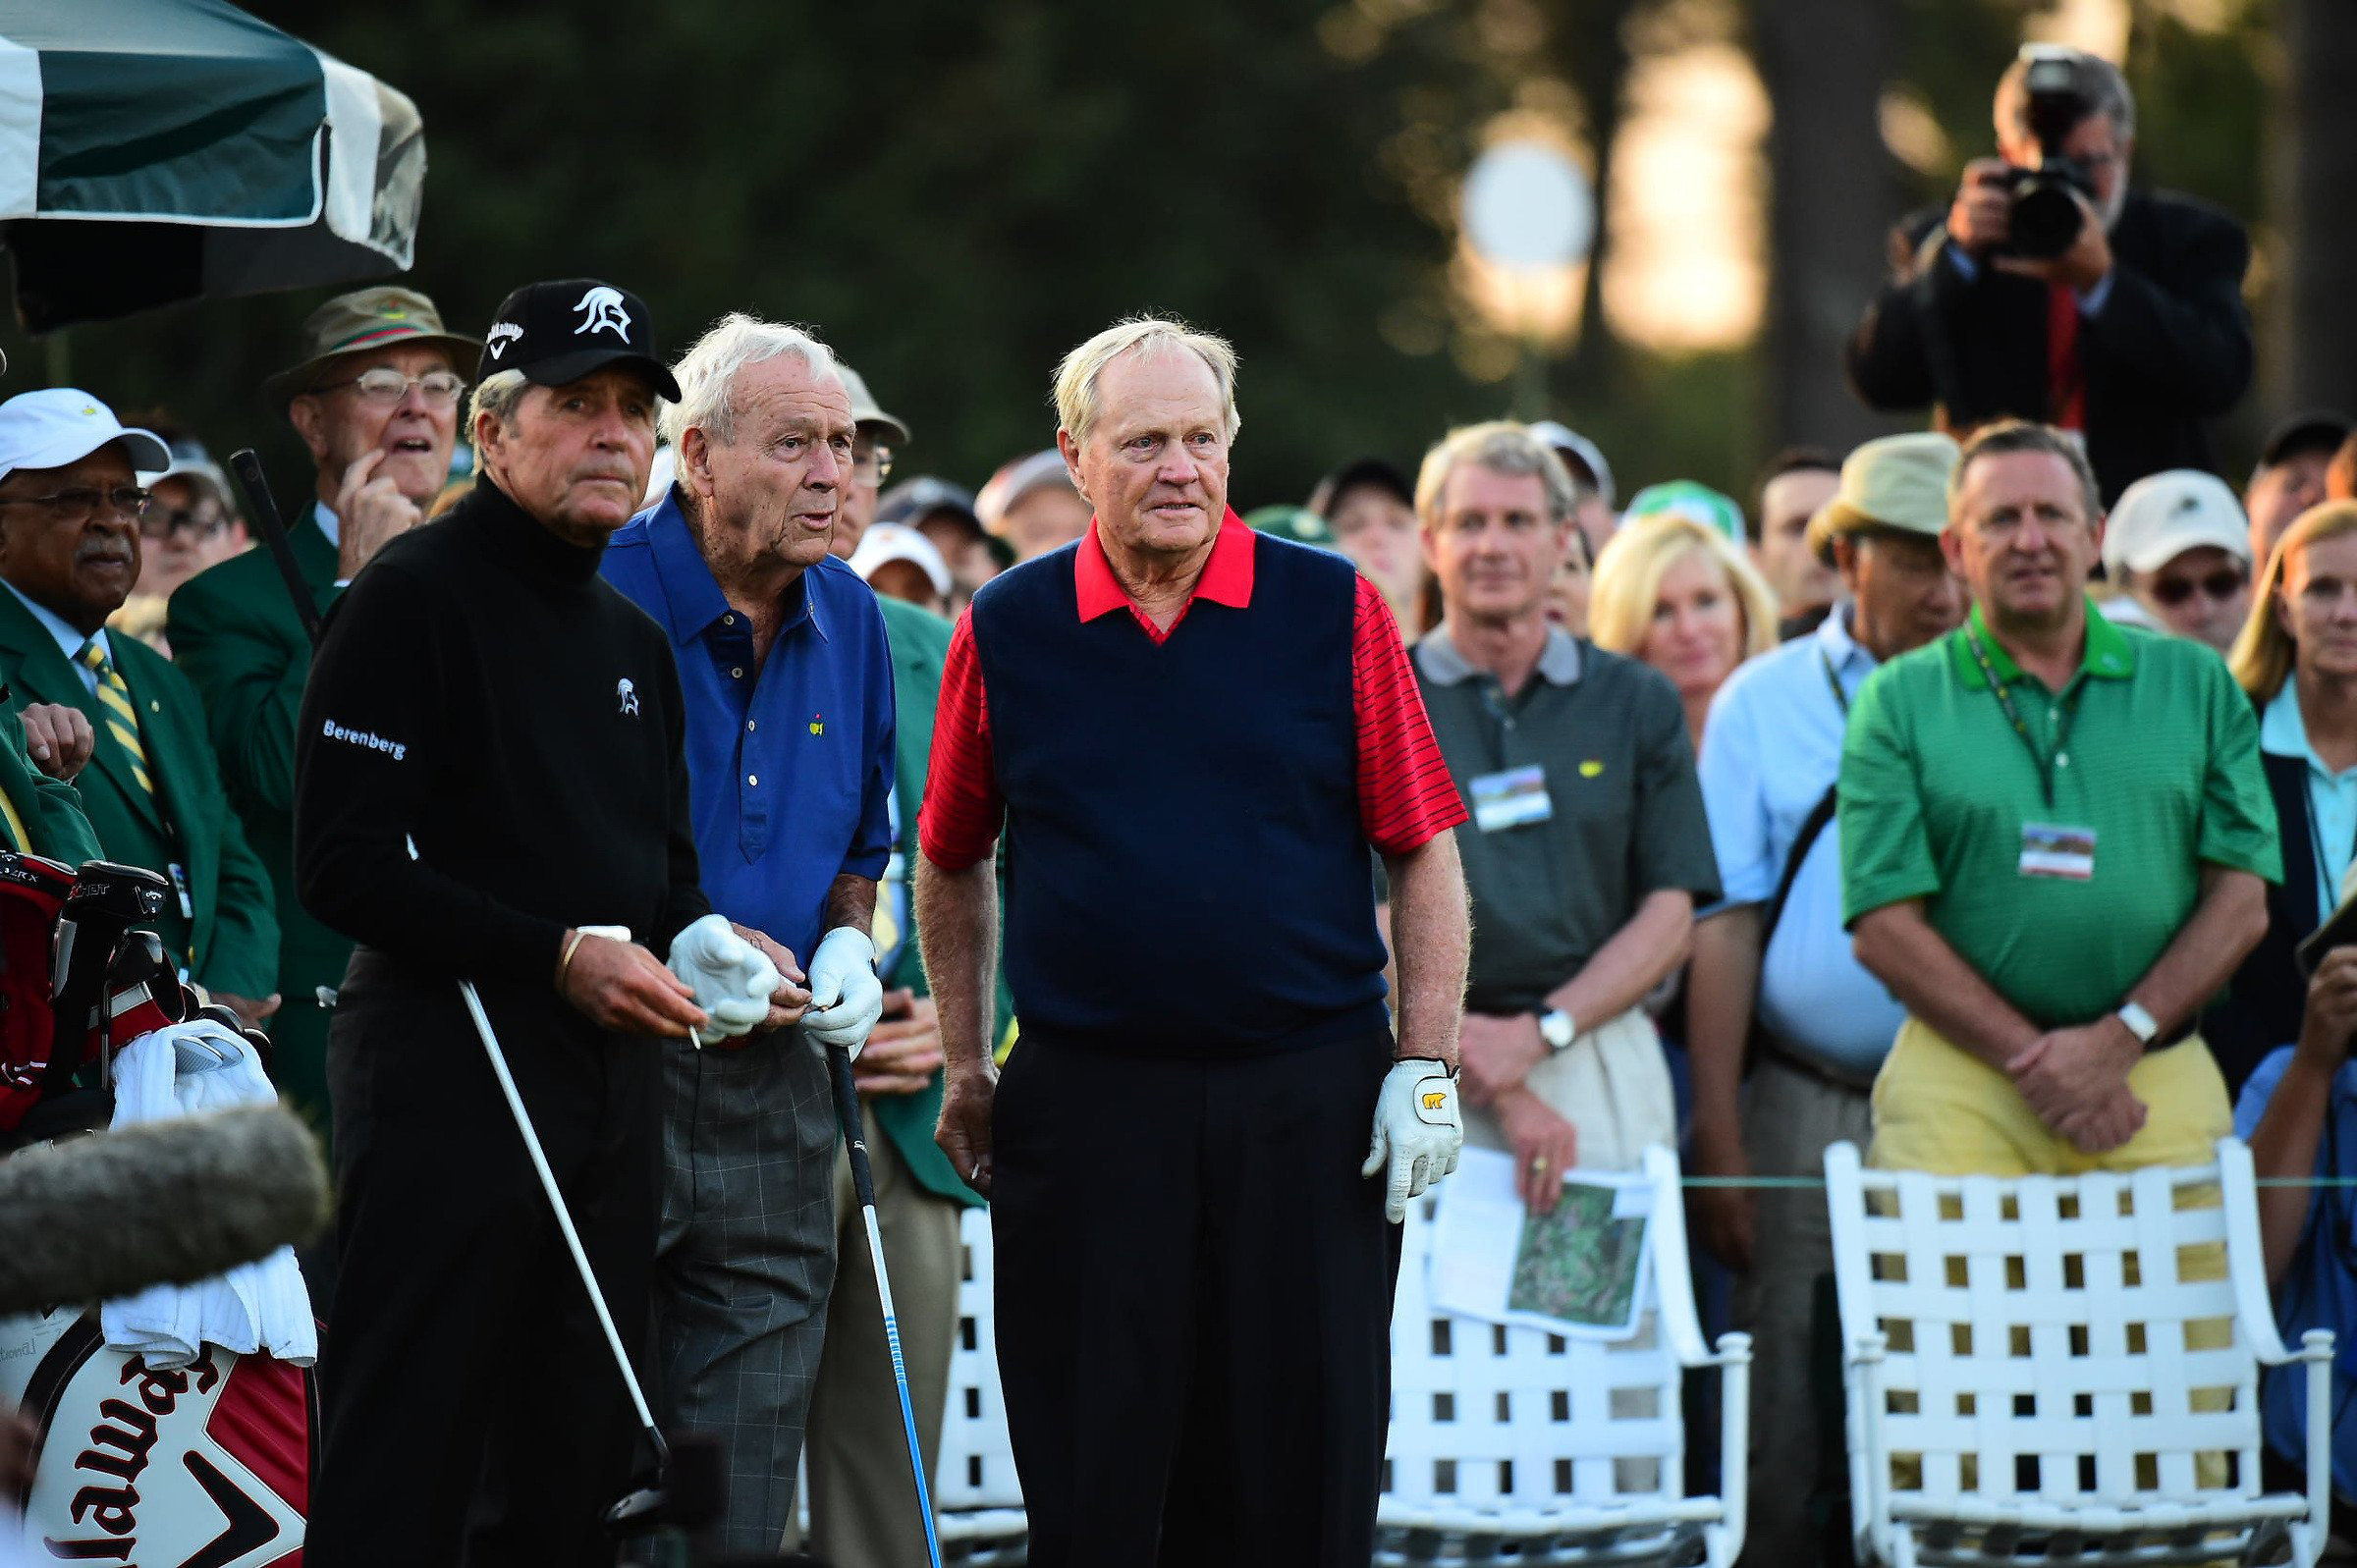 Gary Player, Arnold Palmer and Jack Nicklaus have 13 Masters titles between them, six for Nicklaus, four for Palmer and three for Player.